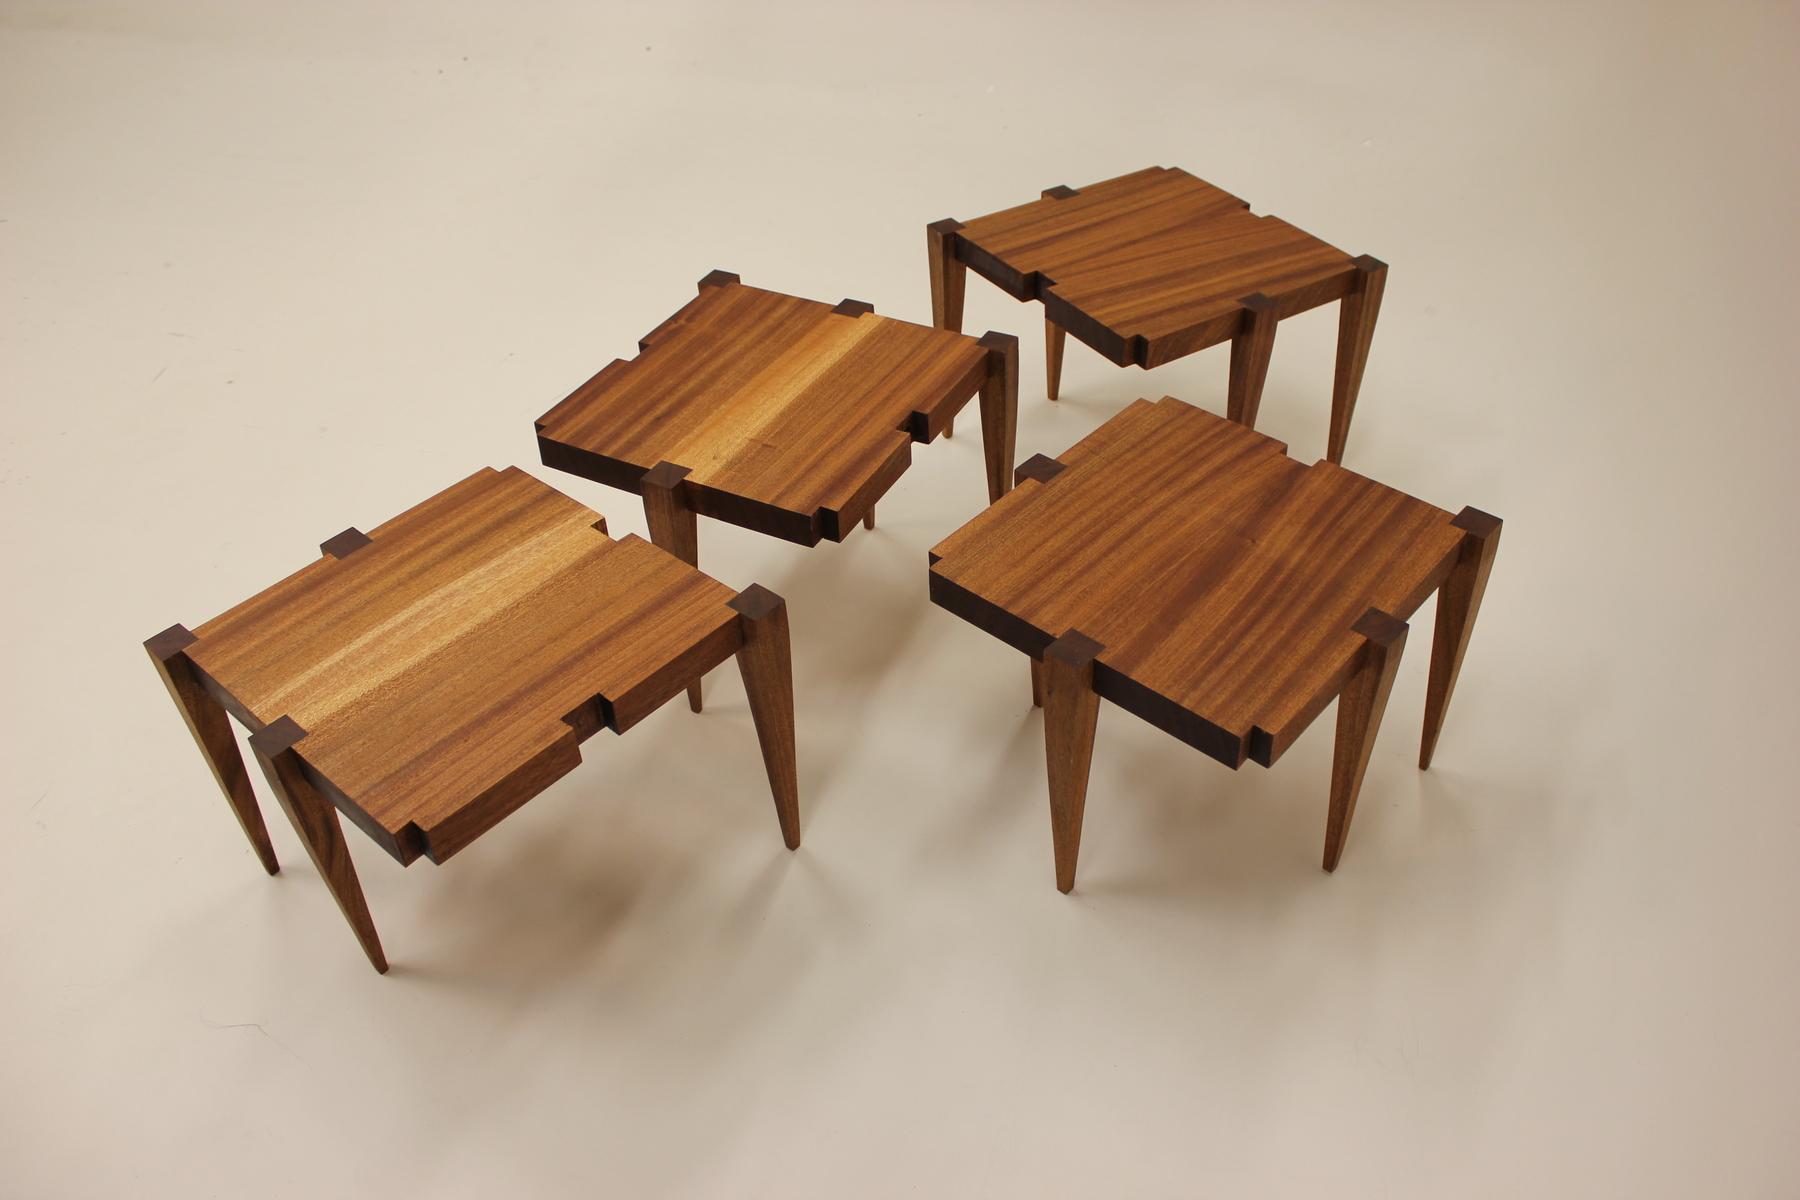 Aus Furniture Transformable Furniture Aus Spring 2014 Furniture Design Basics